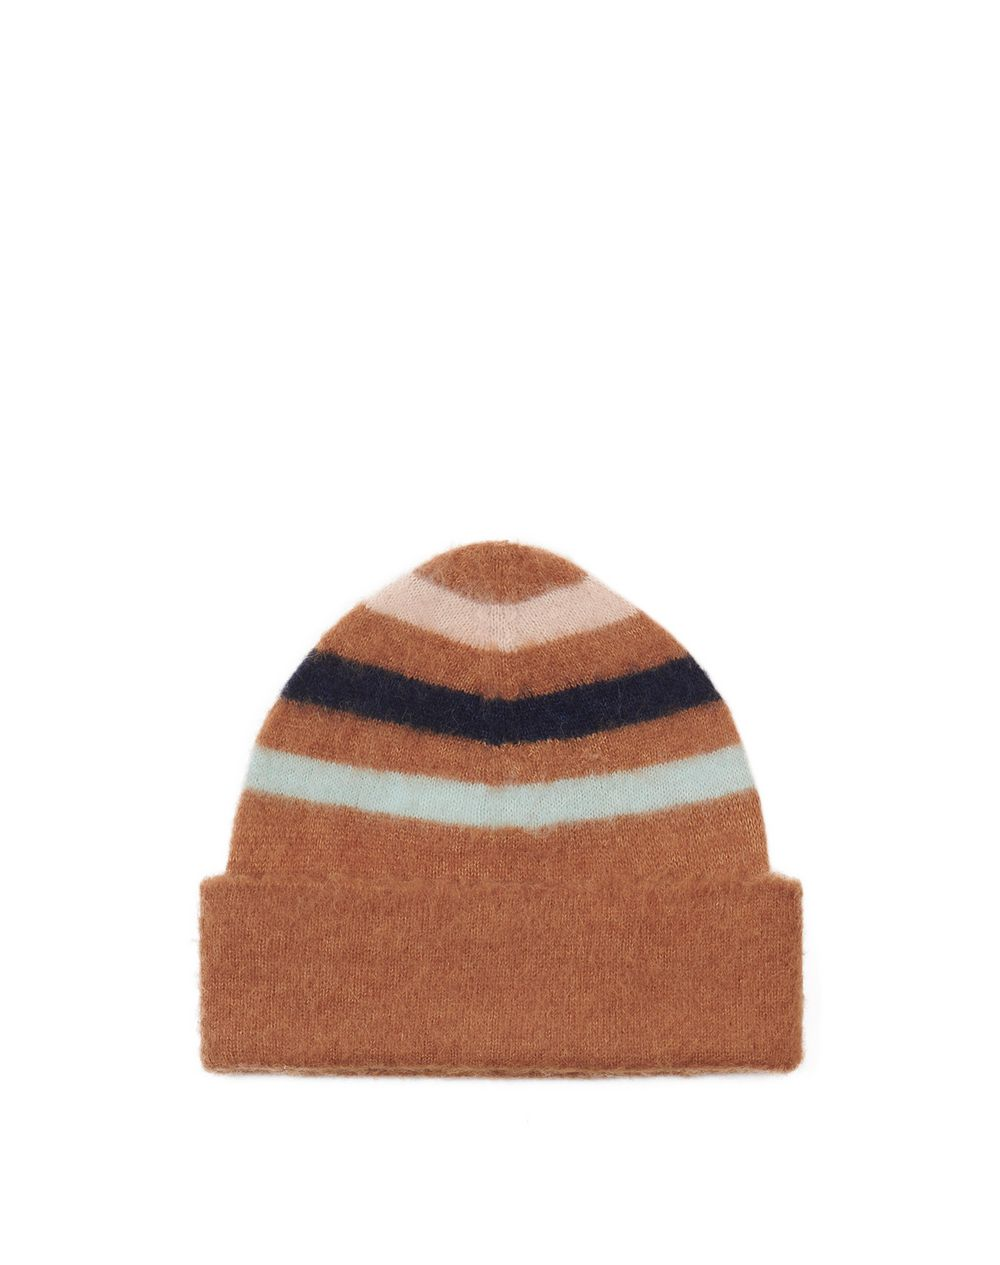 STRIPED HAT IN CASHMERE BLEND - Lanvin